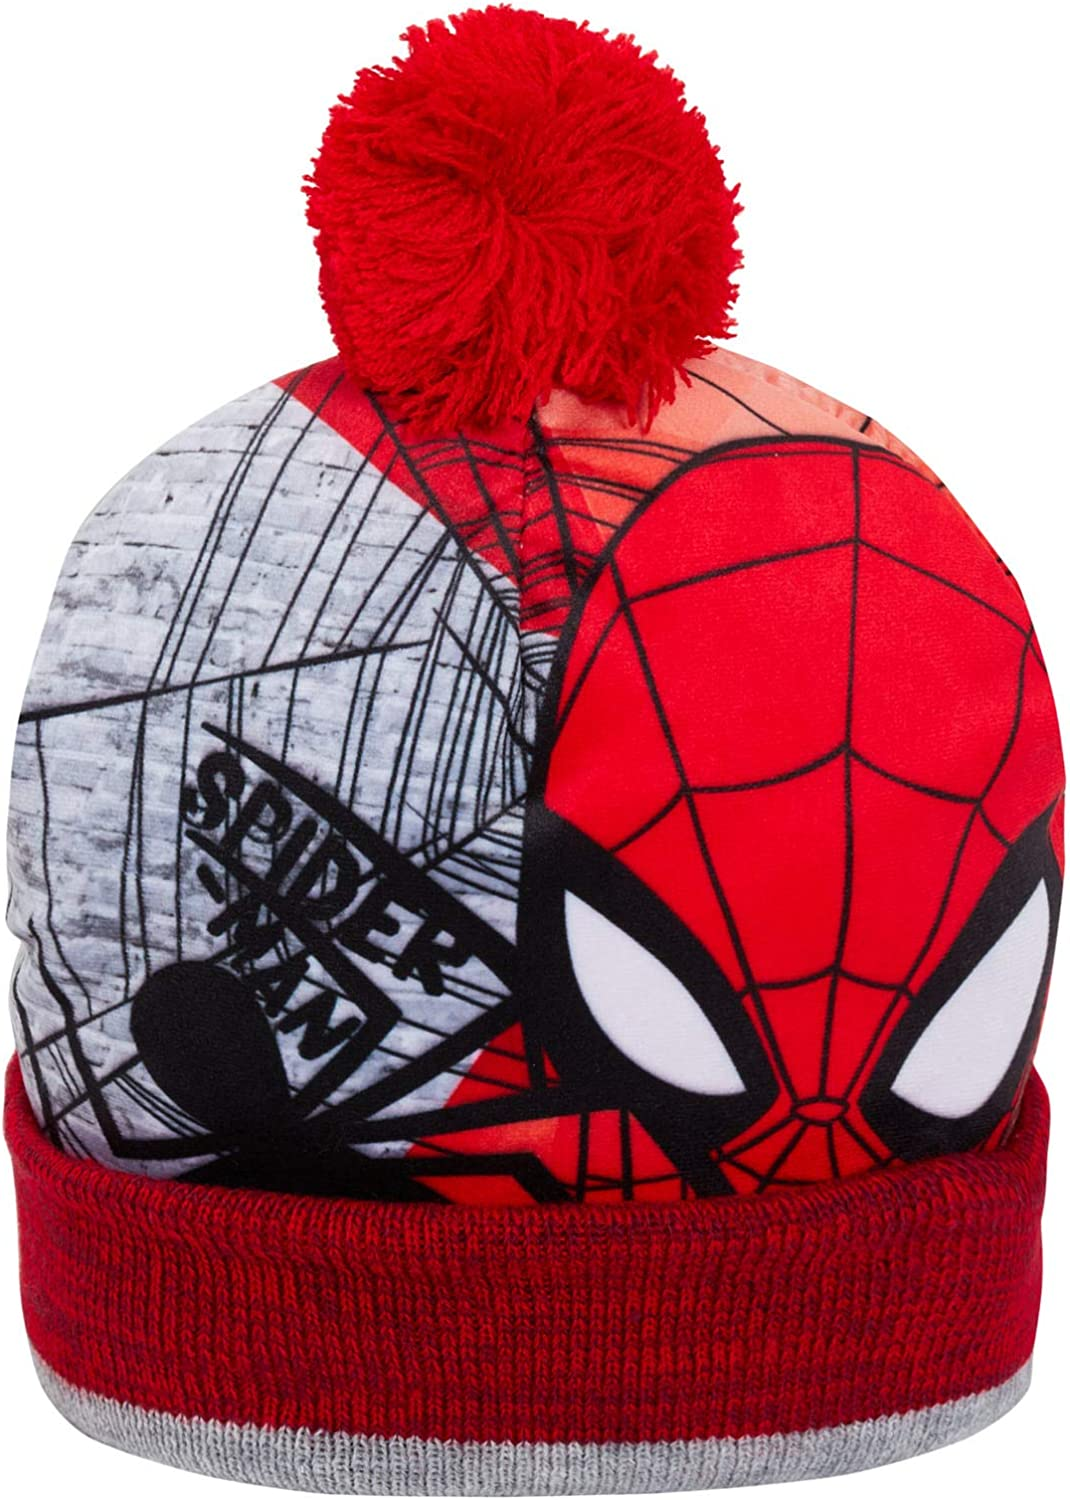 Marvel Boys Spiderman Bobble or Beanie Hat with Gloves Set Winter Warm Knitwear Kids Xmas Gift